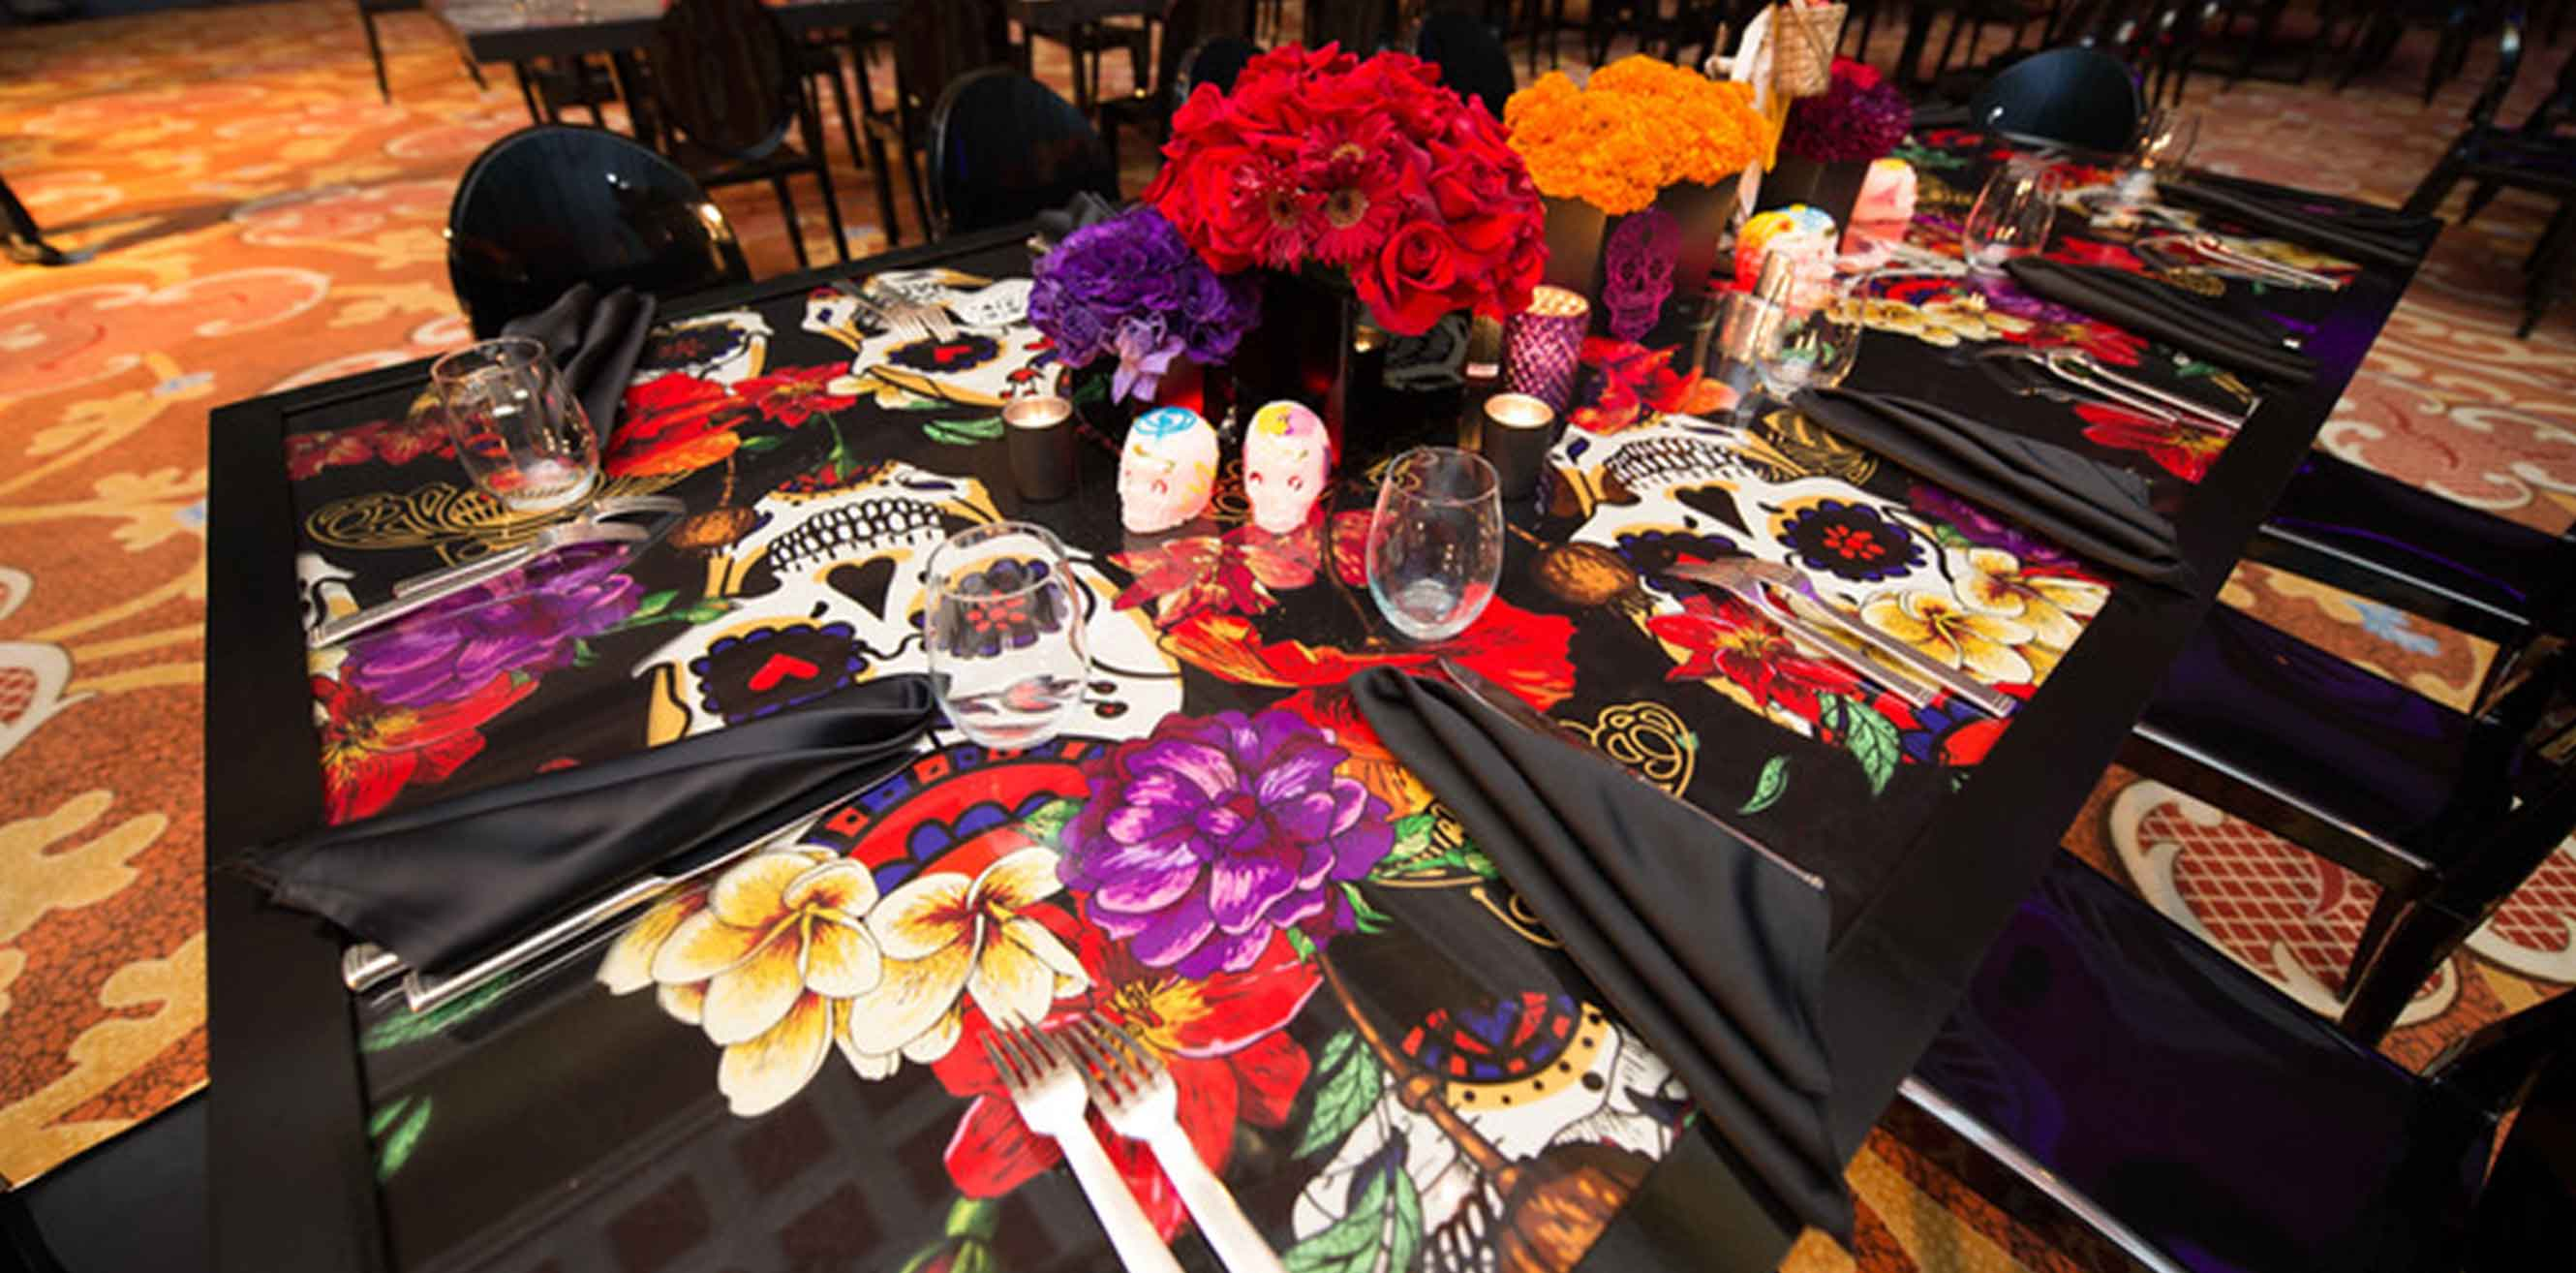 Screen printed skulls on place settings for Dia de los Muertos